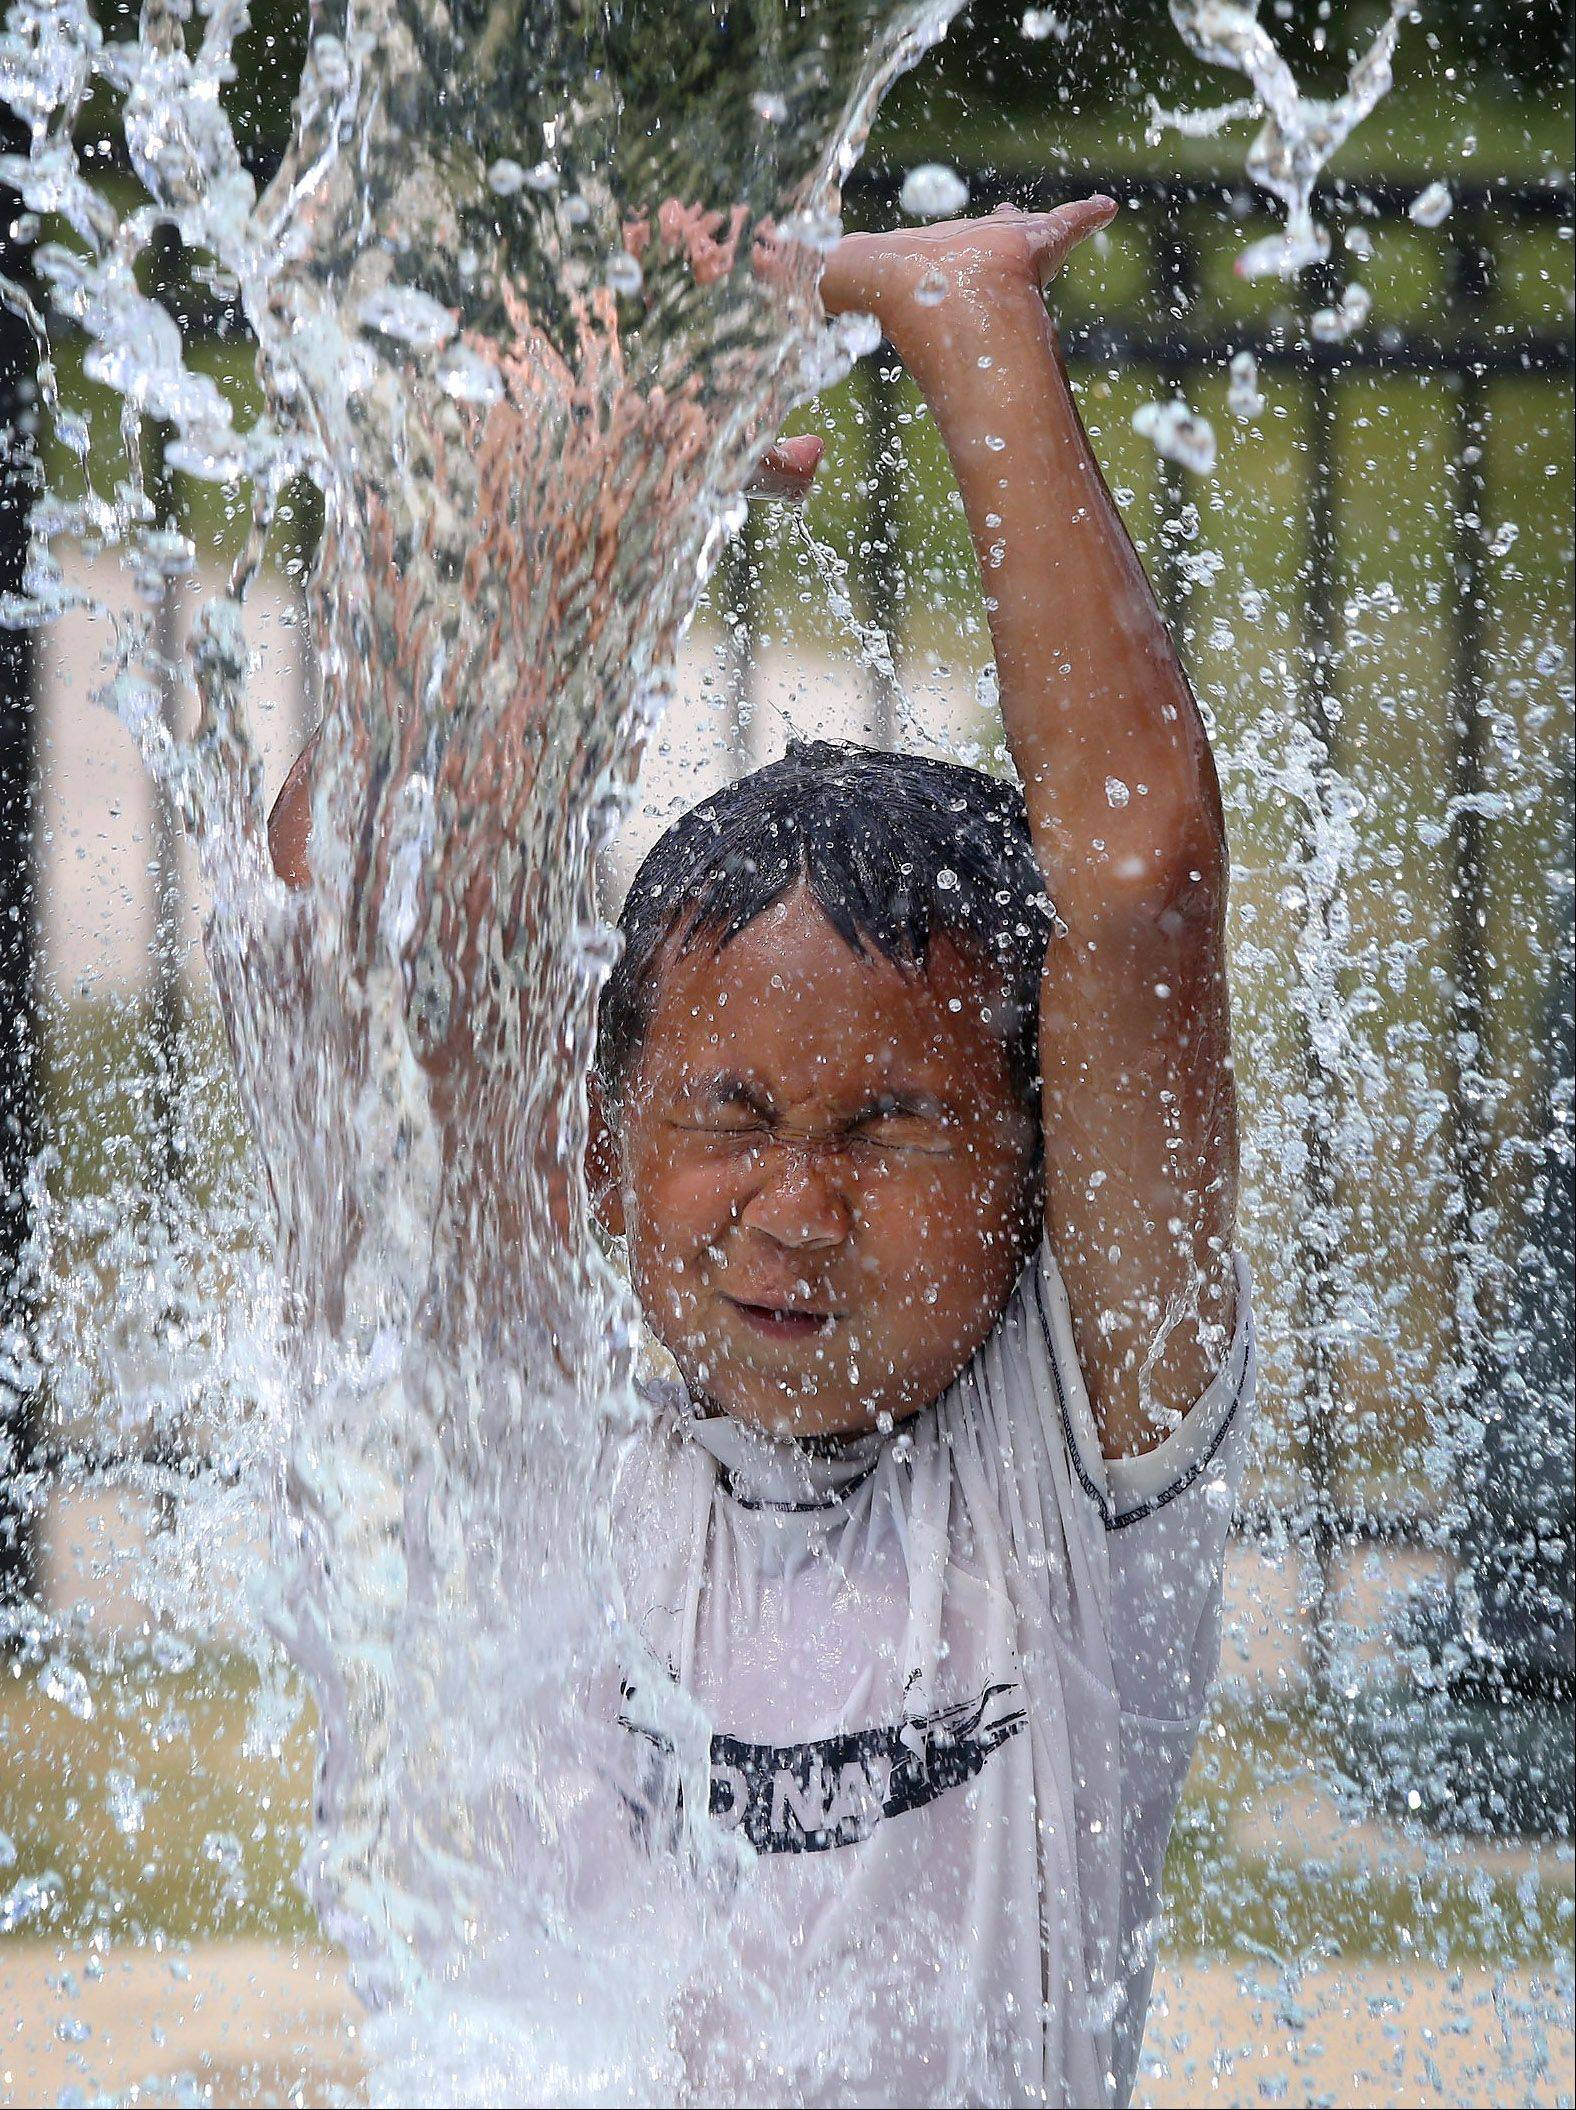 Jeremiah Hettich, 7, of Old School Montessori in Grayslake, plays at the Grayslake Park District Spray Park Tuesday. The hot, humid weather made it feel like it was over 100 degrees.